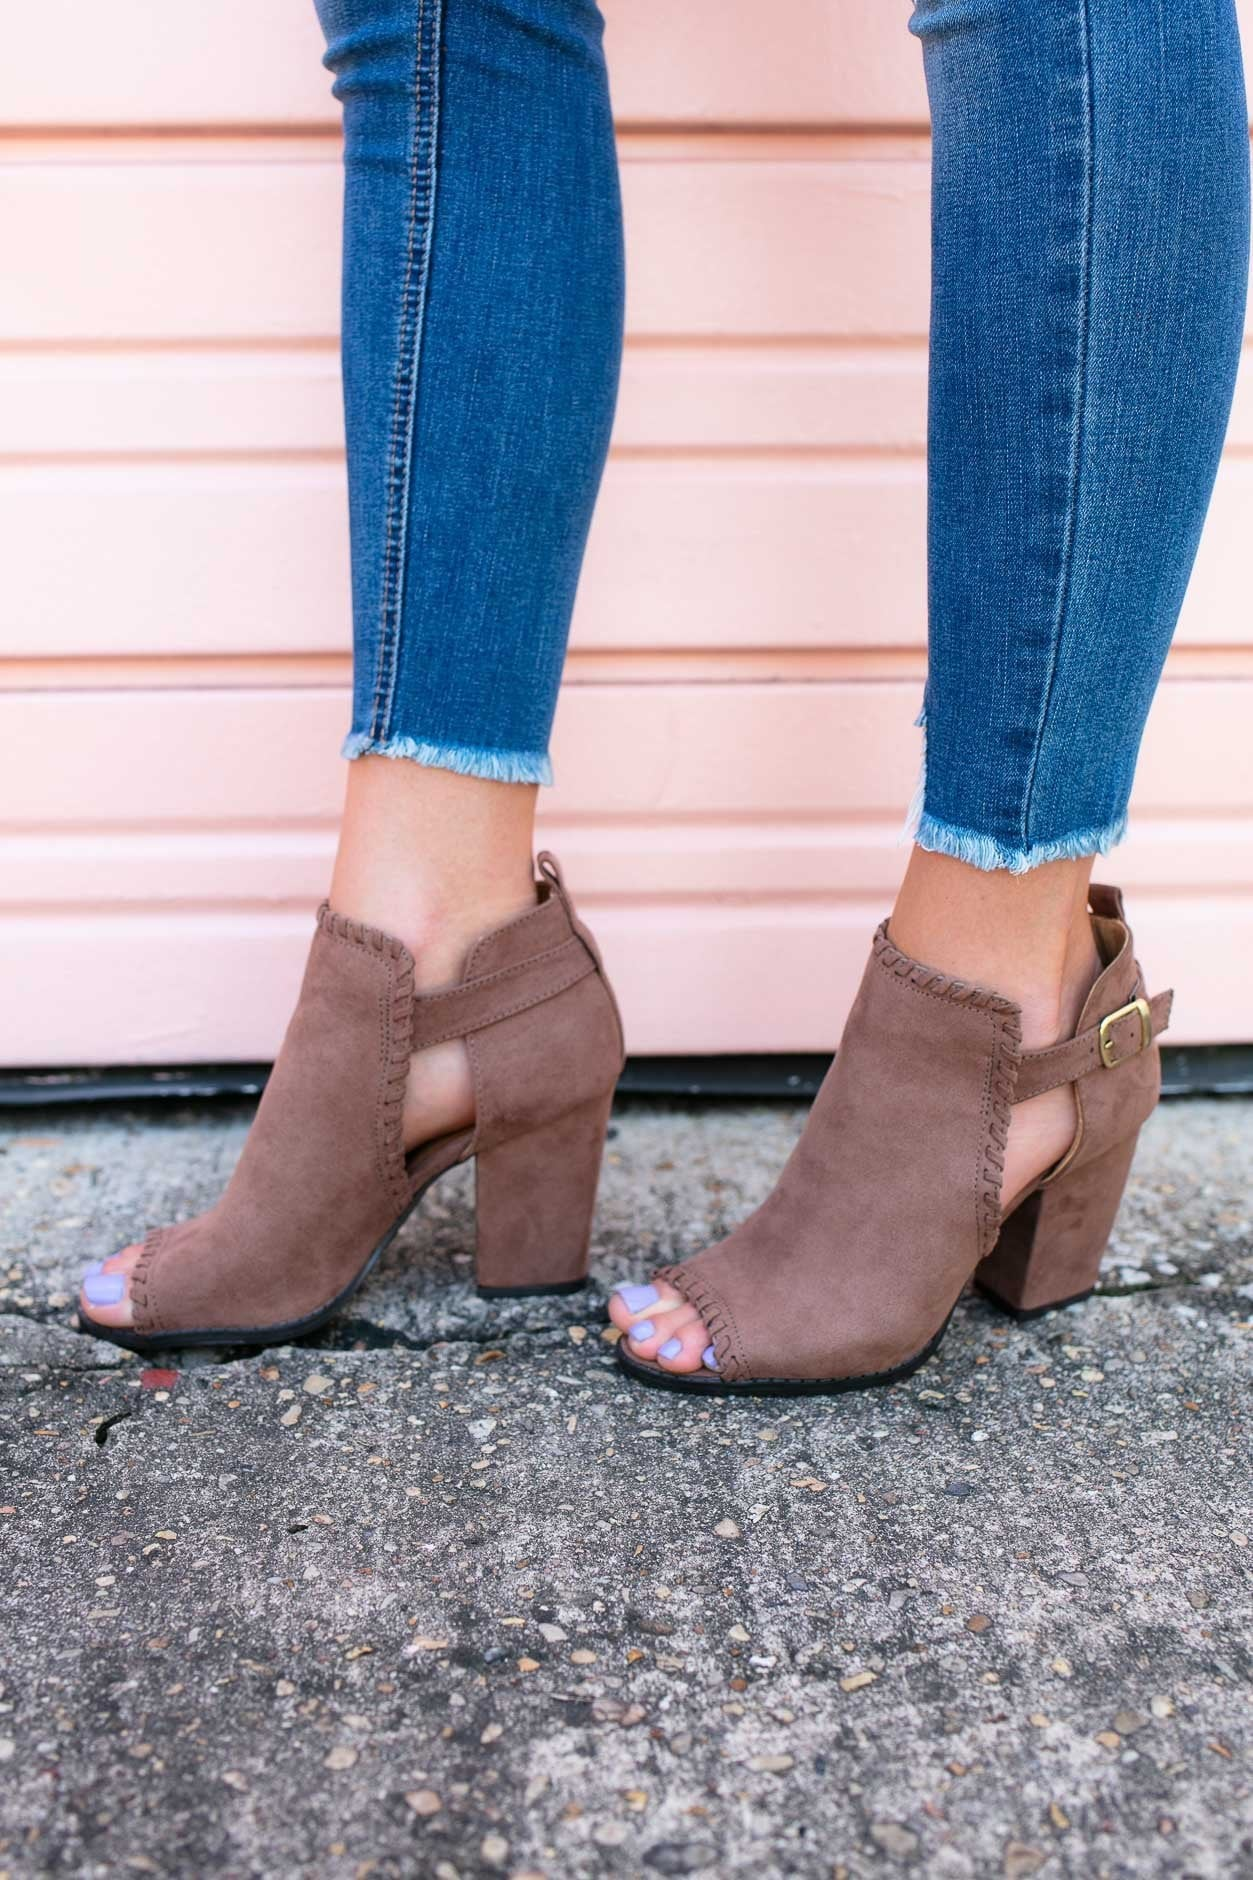 I Love You A Latte Suede Ruffle Booties - Nutmeg